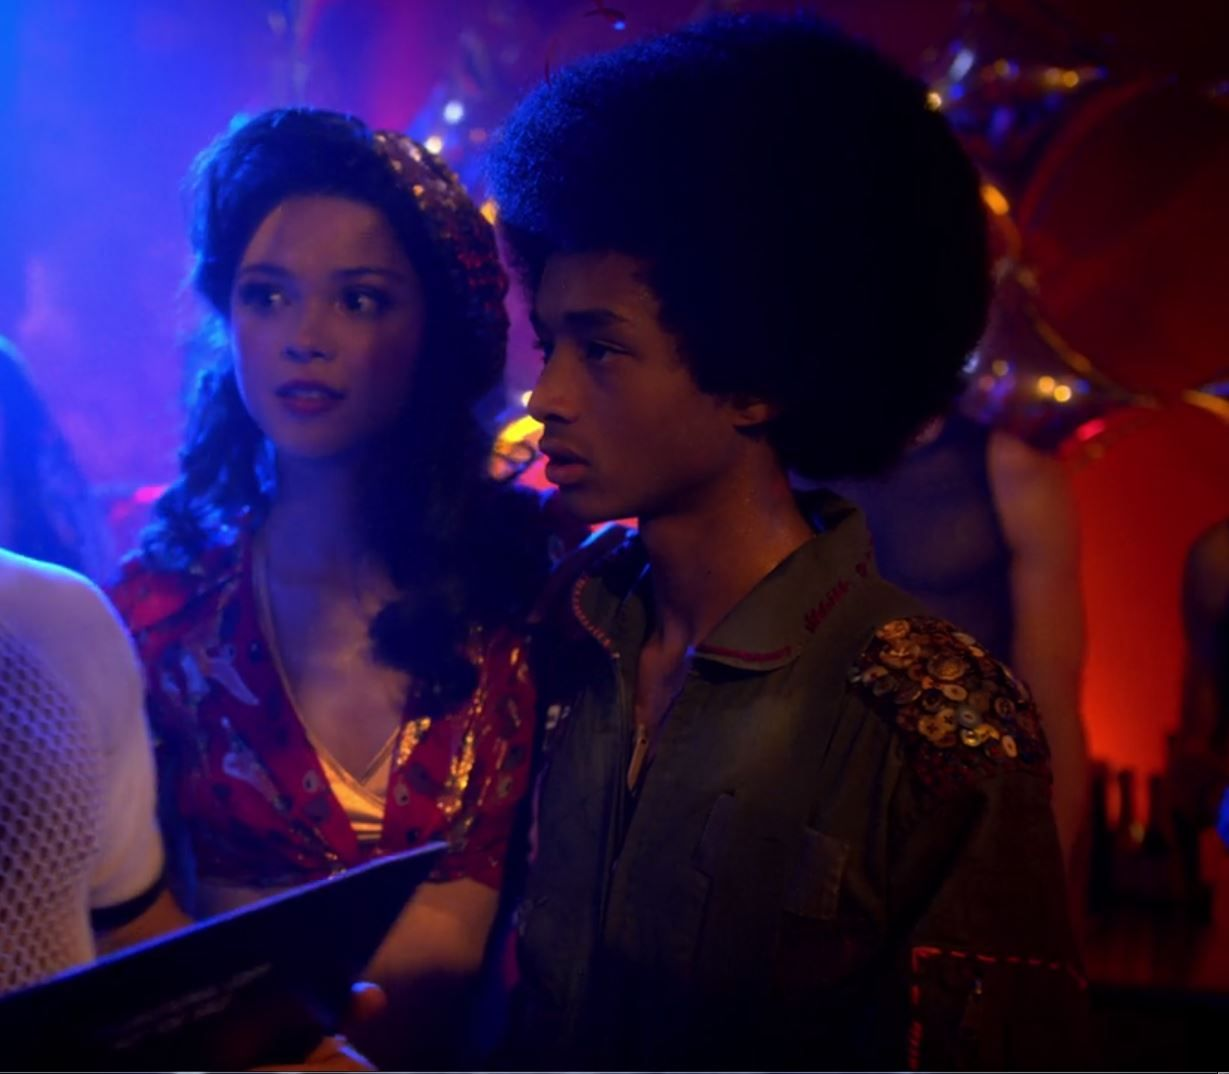 skye grayson and jaden smith the get down netflix series skye grayson and jaden smith the get down netflix series female faces character design reference netflix series jaden smith and